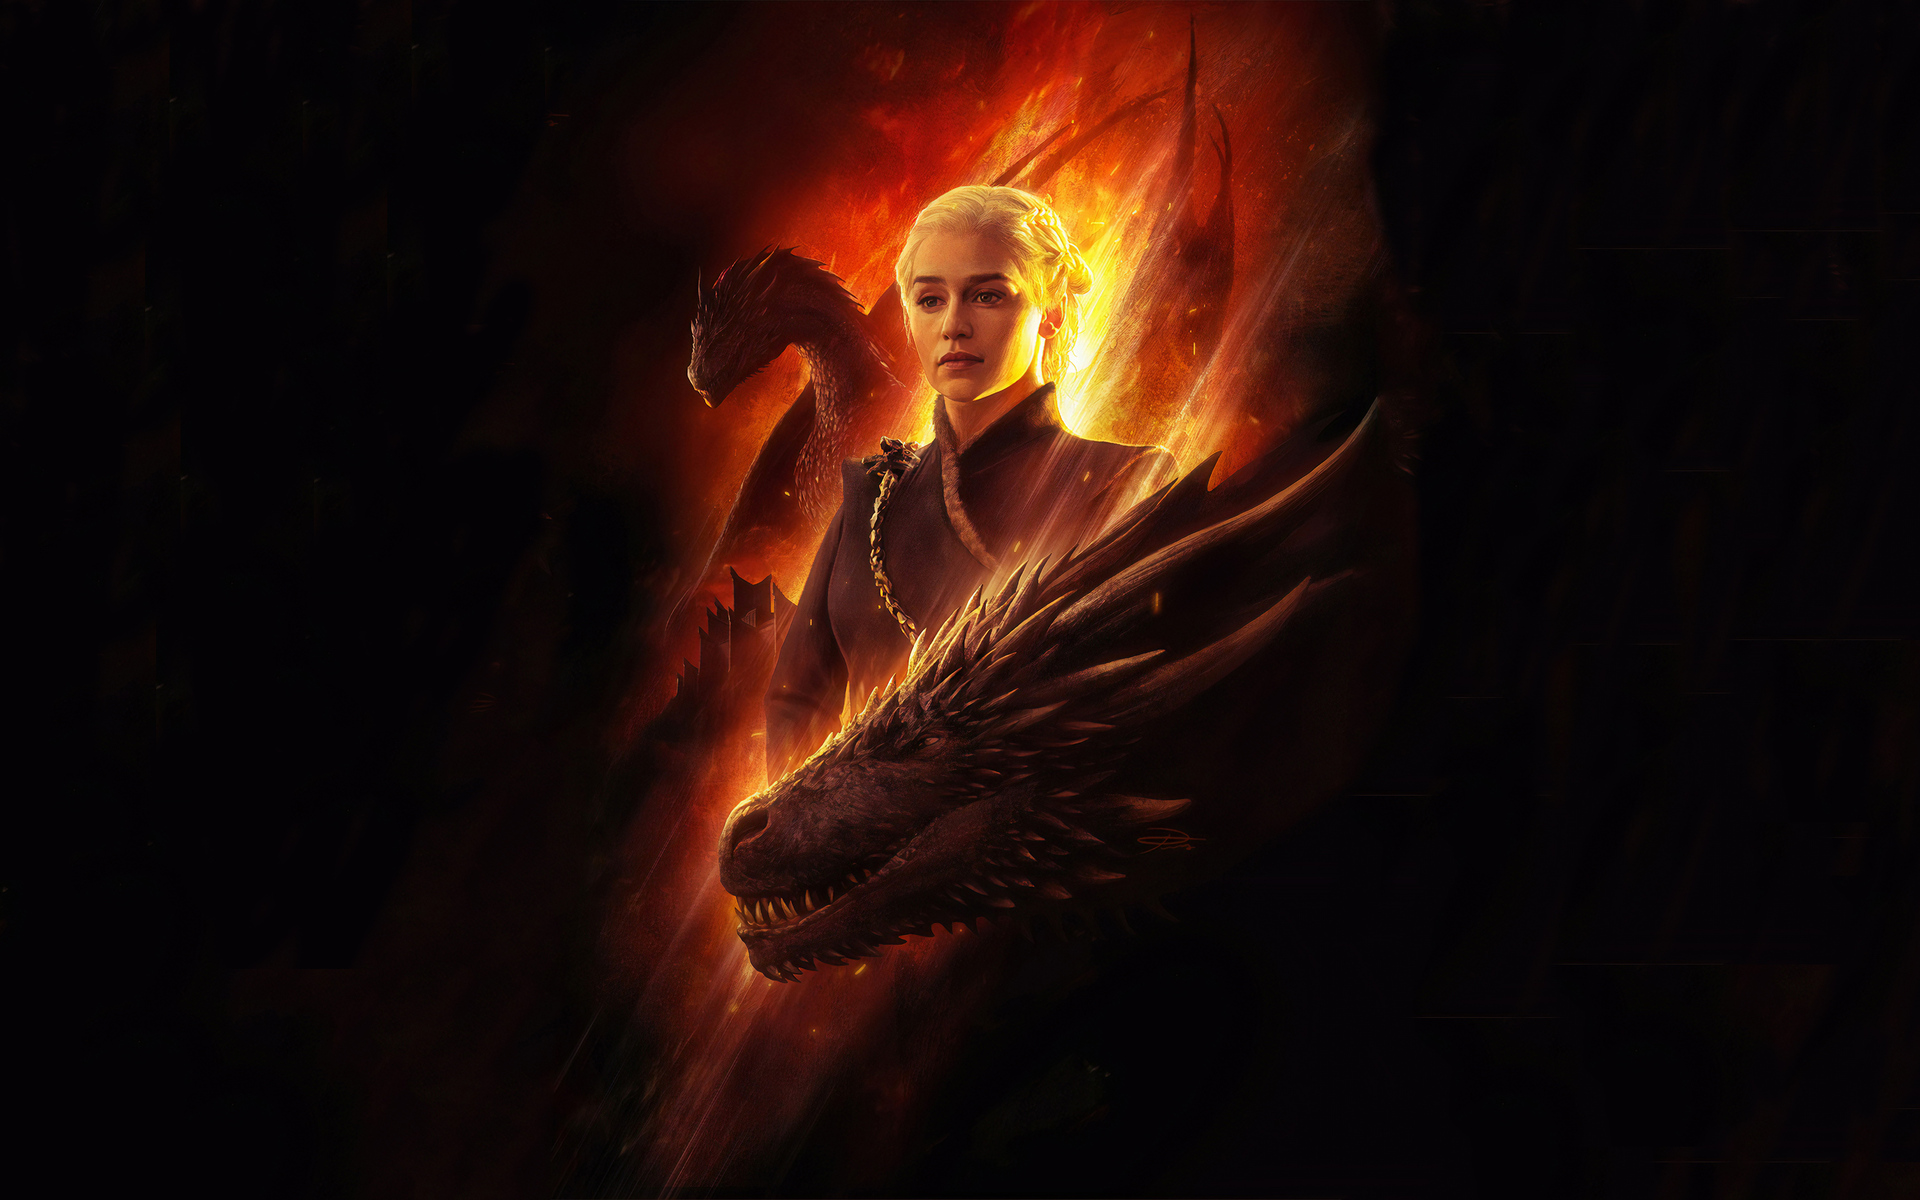 mother-of-dragons-fanart-4k-ep.jpg